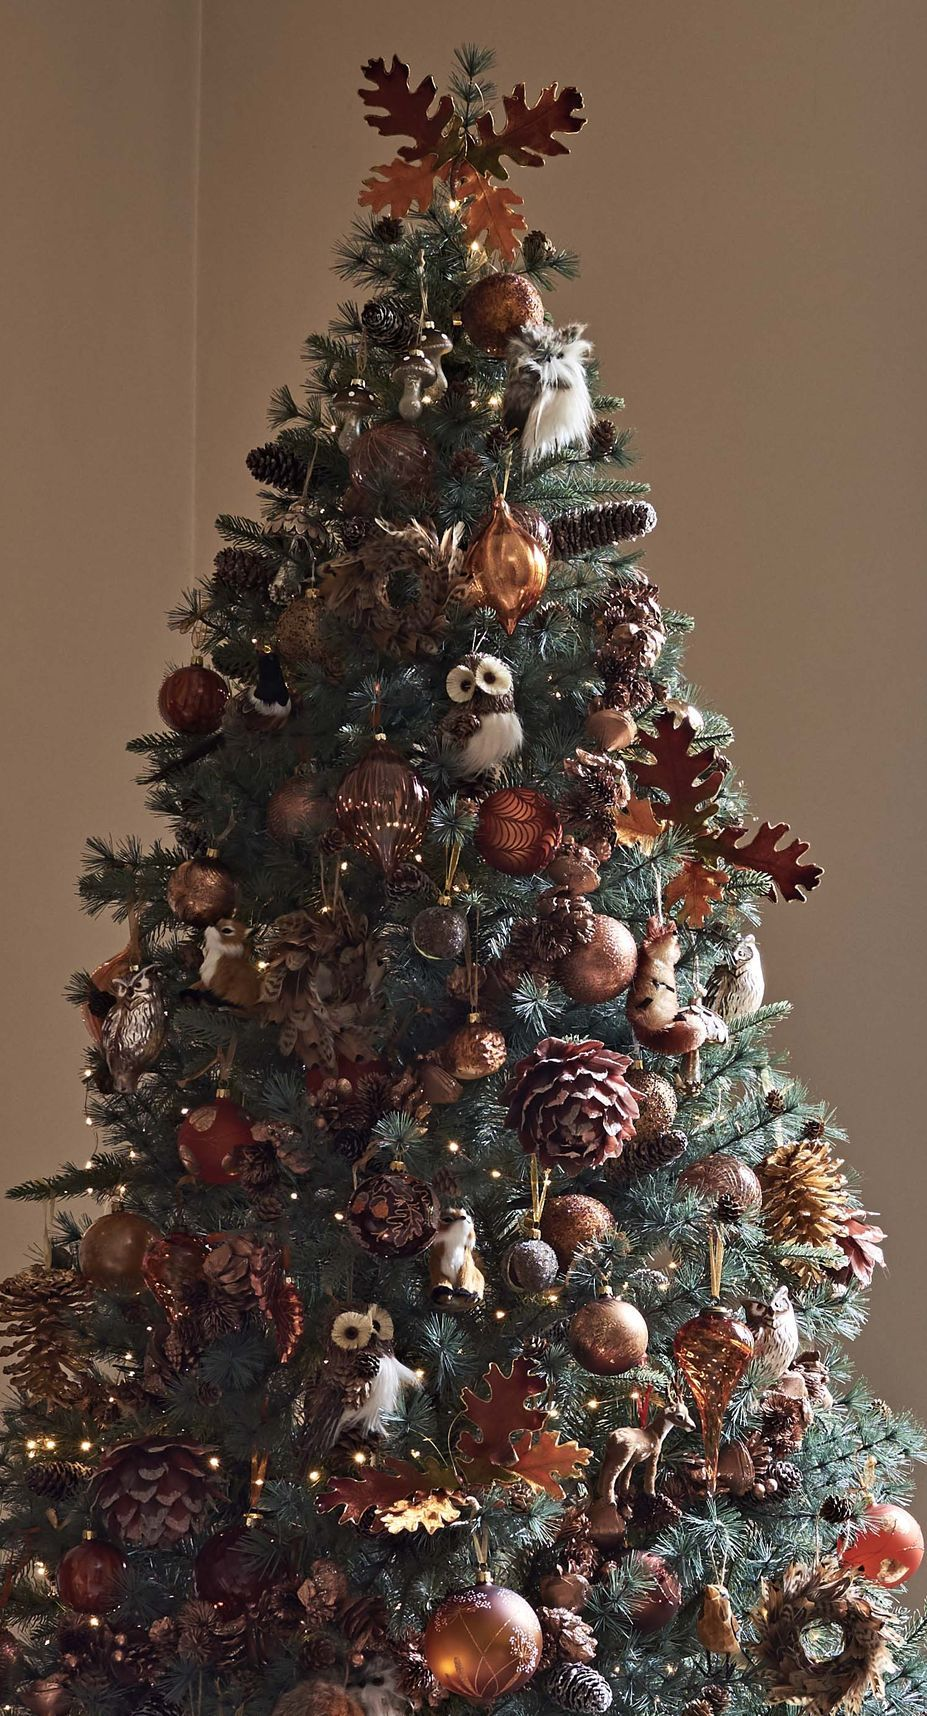 The Autumn Christmas Tree Is The Alternative Christmas 2020 Decorating Trend The Autumn Christmas tree is the alternative way to decorate this